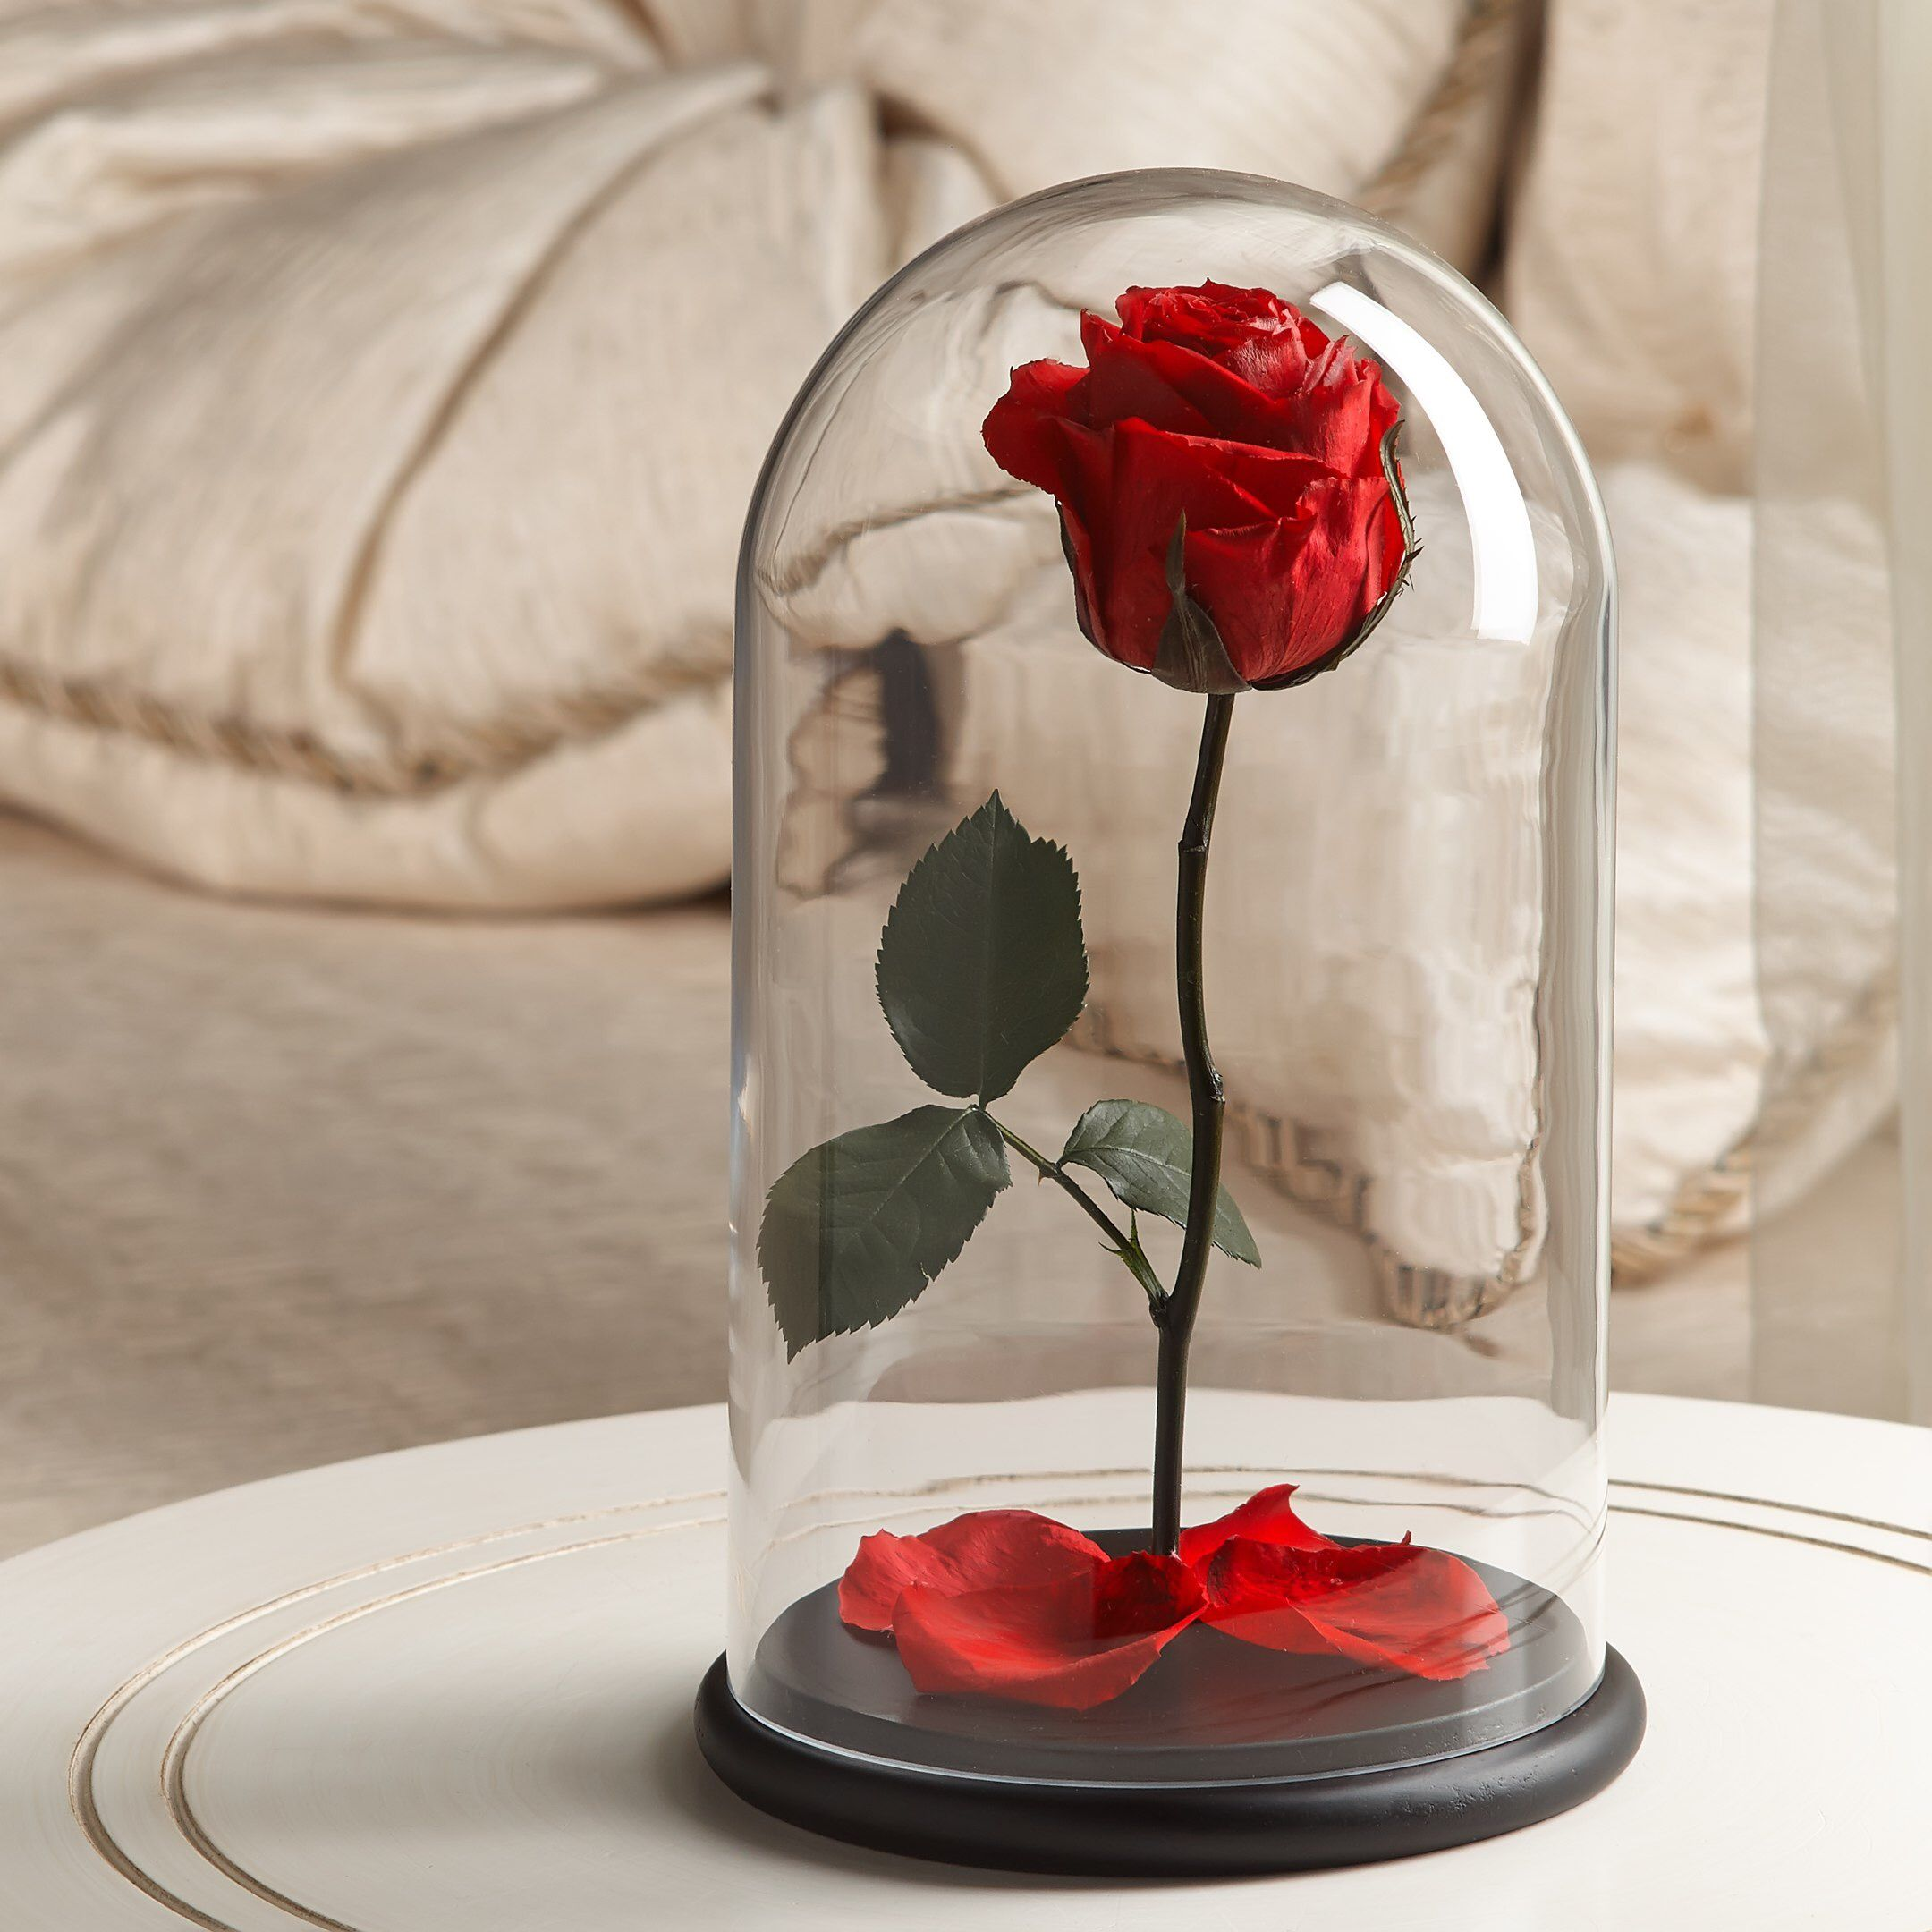 Beauty and the beast rose its a best present for a queen of your beauty and the beast rose its a best present for a queen of your heart izmirmasajfo Choice Image